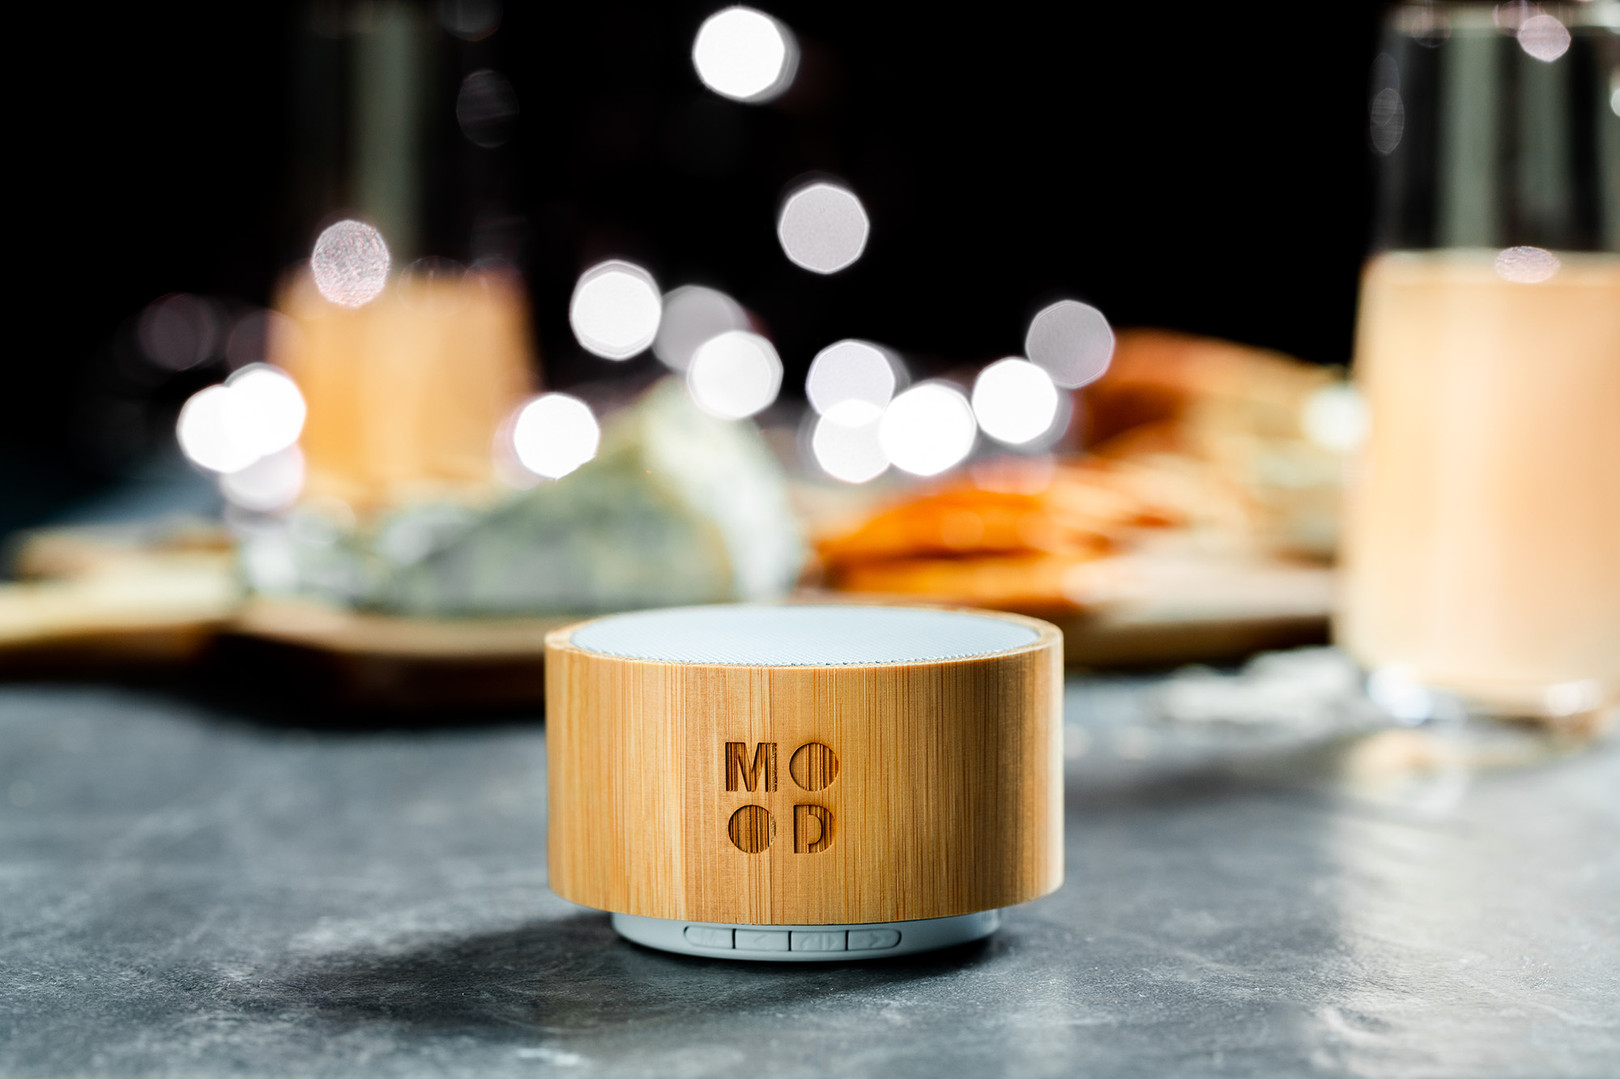 MOOD Gin Merch Speaker